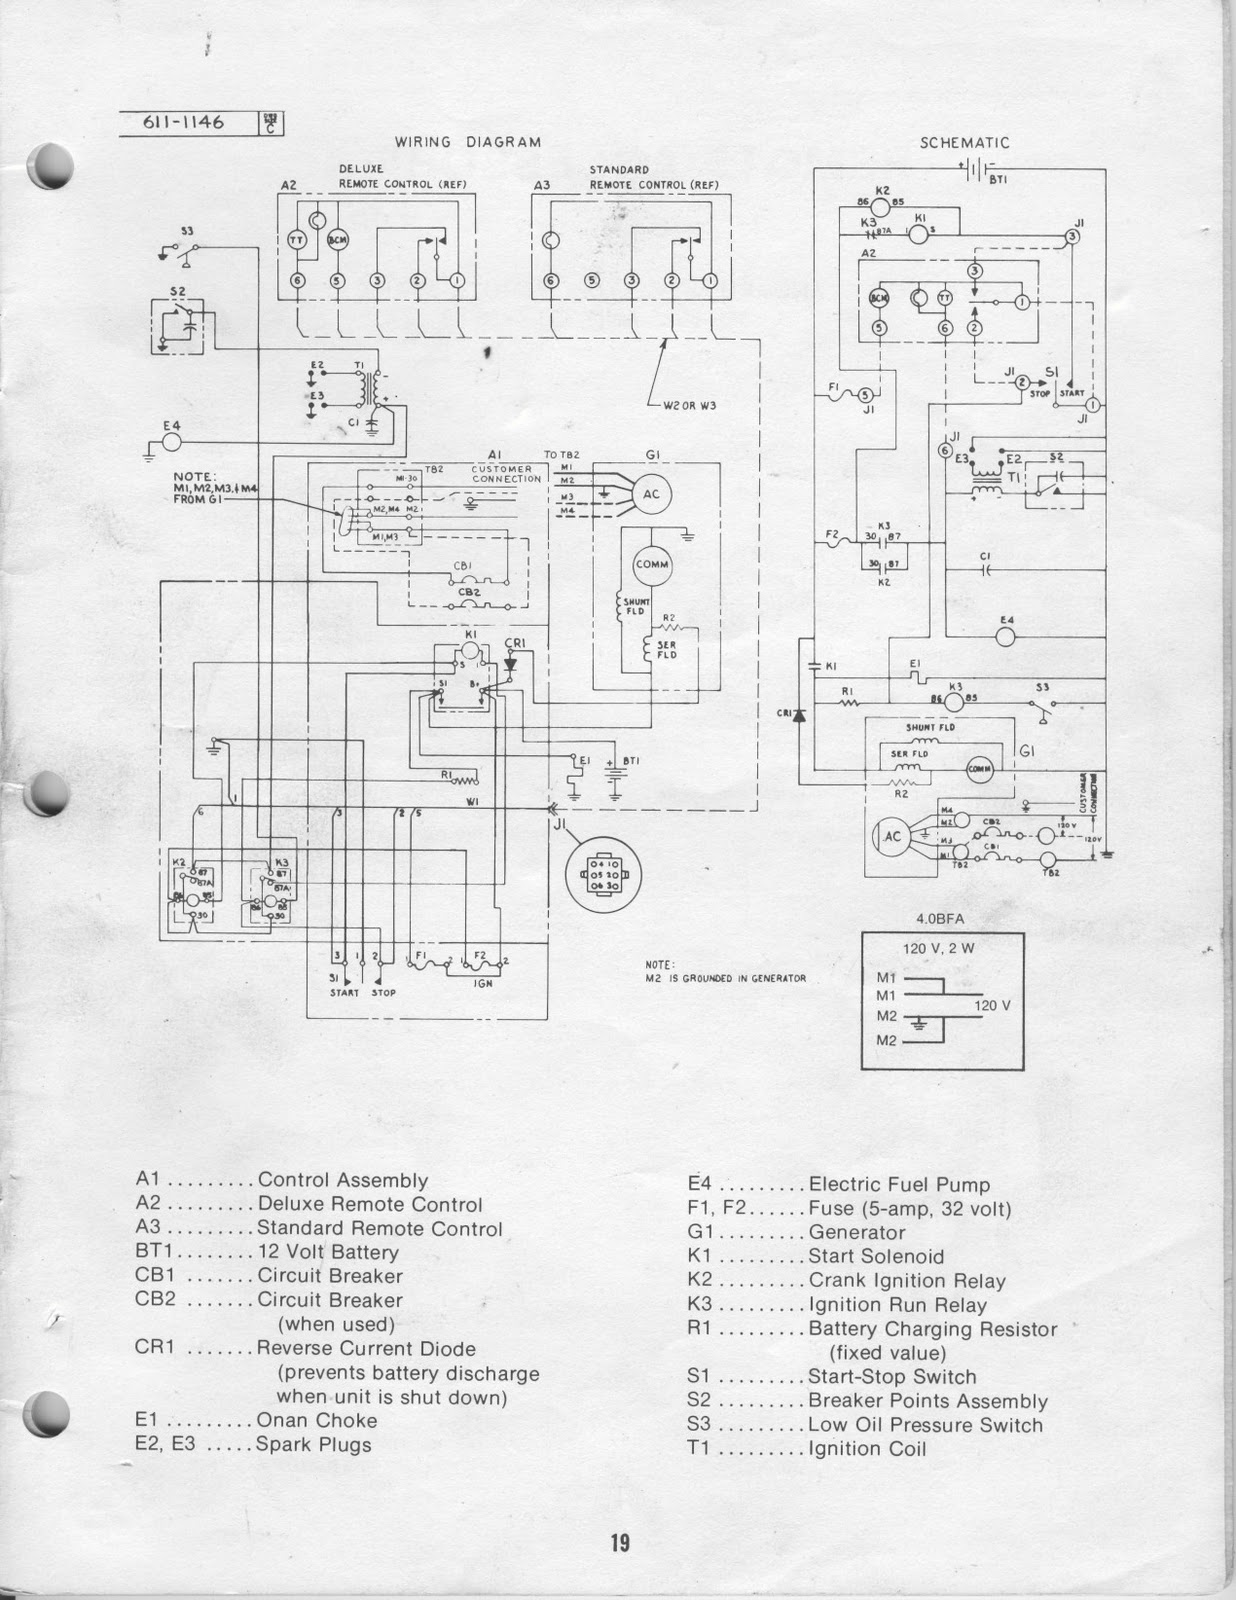 1983 fleetwood pace arrow owners manuals onan 4 0 kw bfa genset Wiring Diagram For Onan Rv Generator onan 4 0 kw bfa genset operators manual posted by vintage travel trailers at 11 19 am wiring diagram for onan 4.0 rv generator